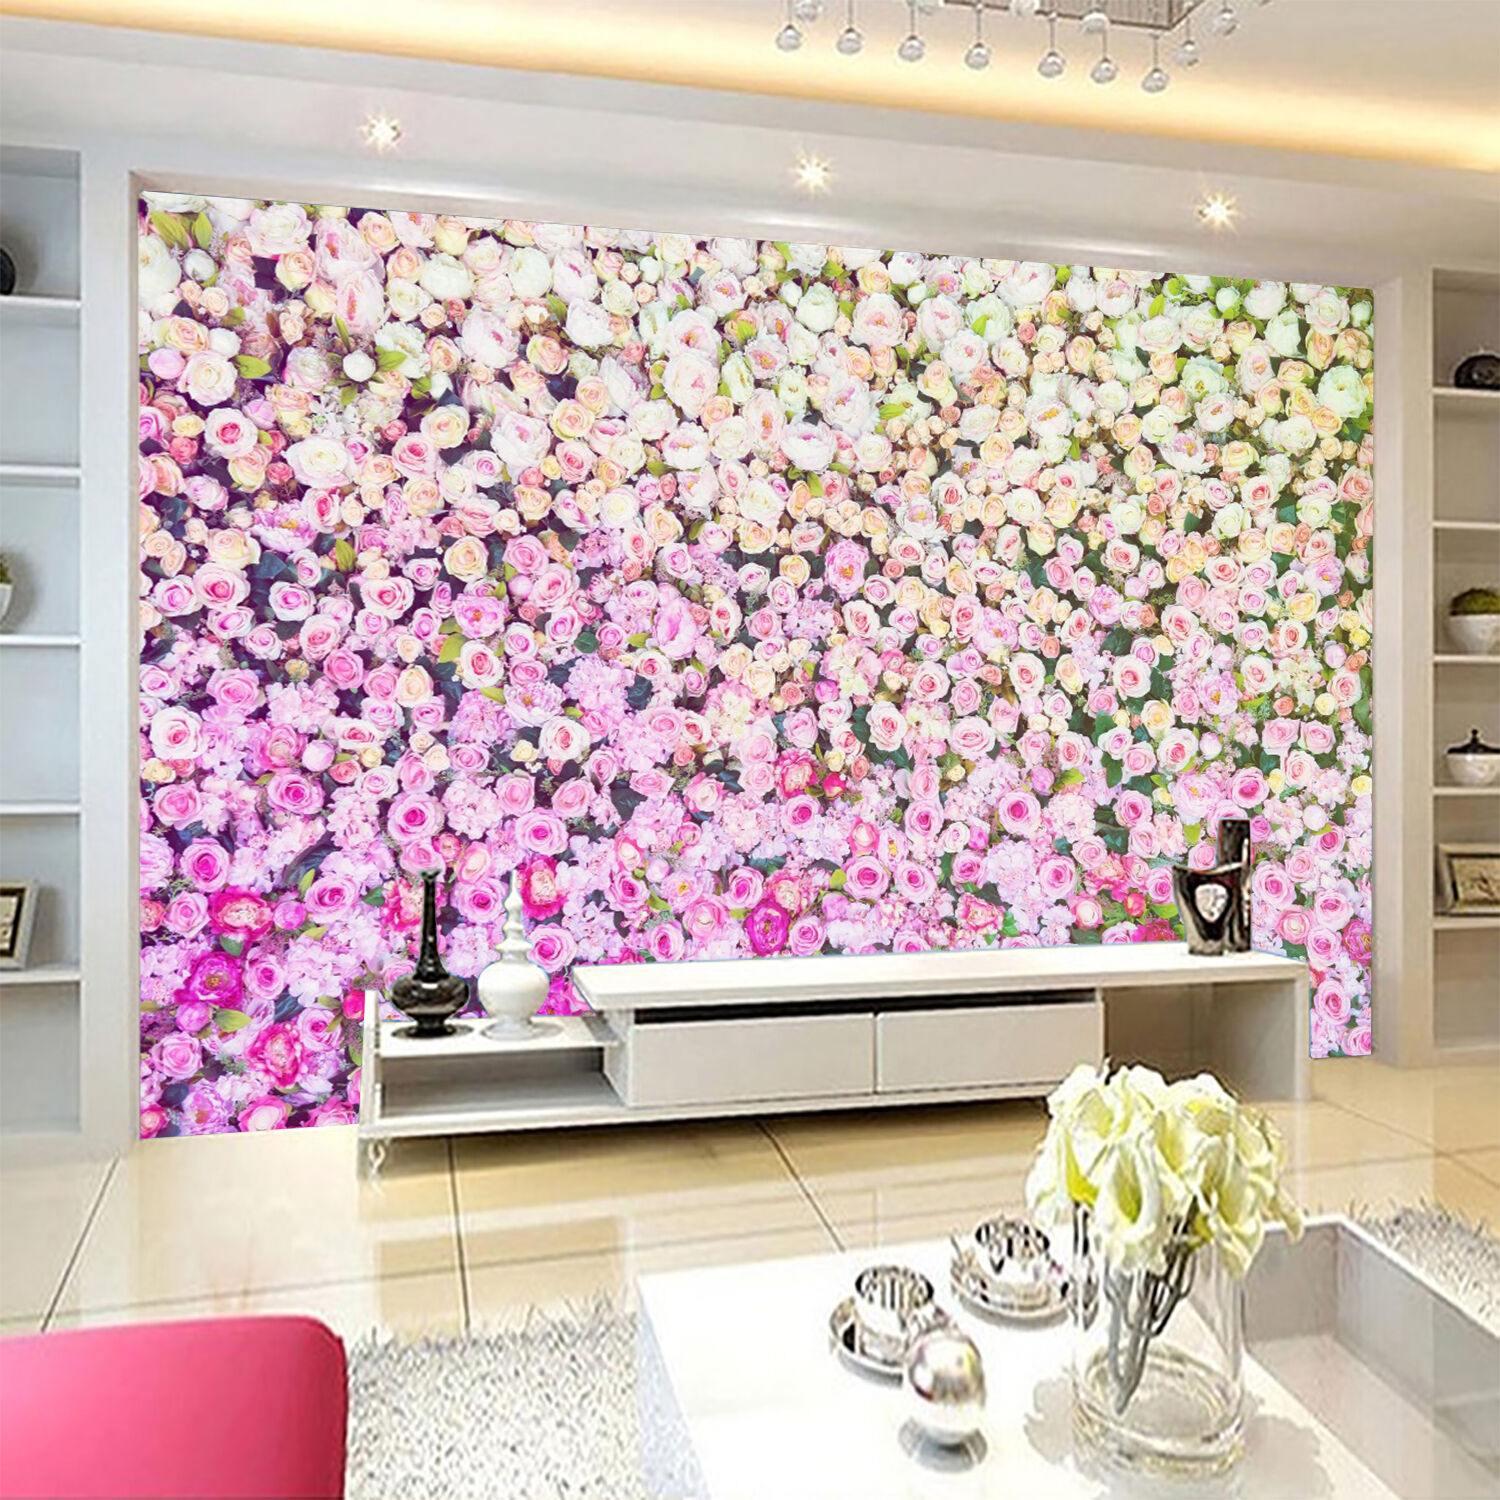 3D Dense Flowers 090 WallPaper Murals Wall Print Decal Wall Deco AJ WALLPAPER